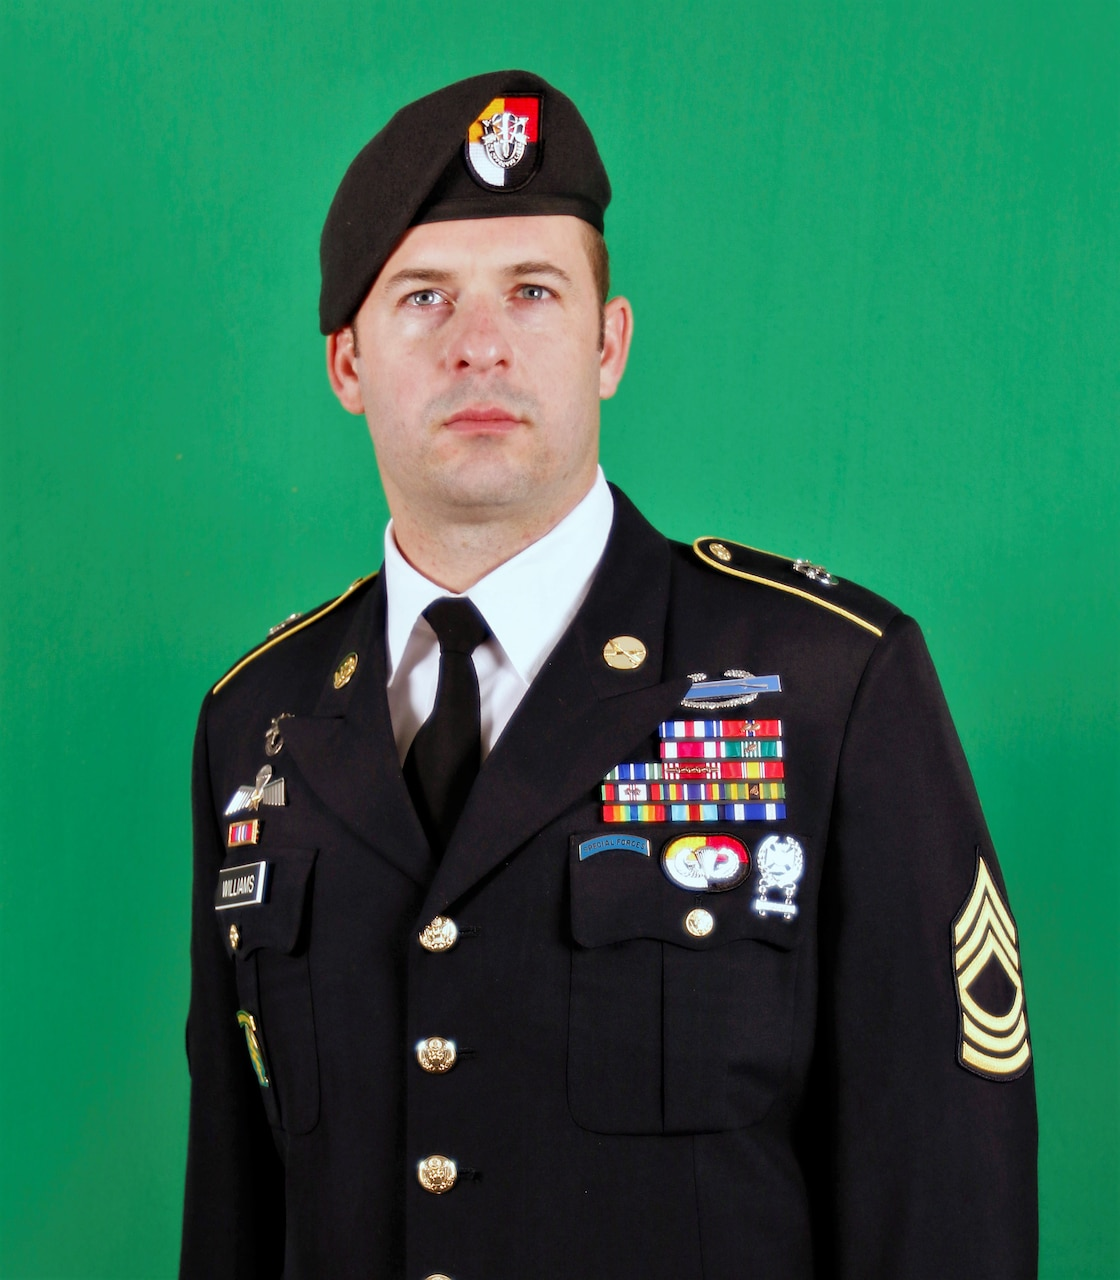 Man wearing dress uniform and beret for an official photo.